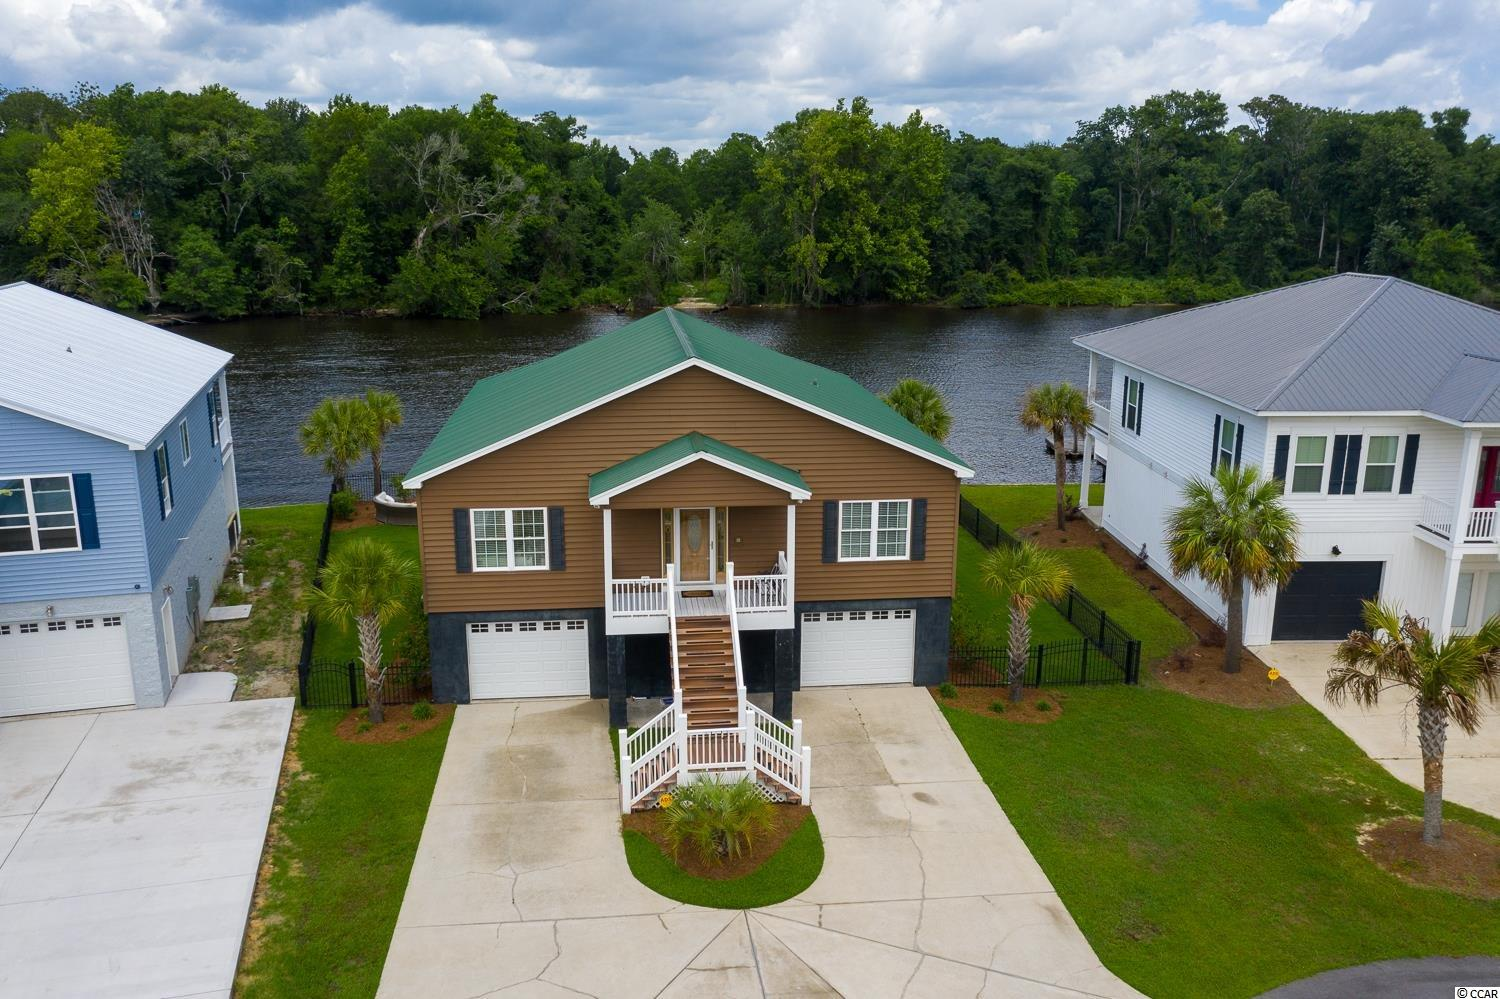 HUGE opportunity to enjoy all that waterway living has to offer in this beautiful 3 bedroom 3 full bath home with No HOA located directly on the intracoastal waterway with incredible views ! You are minutes from Market Commons where there is shopping , dining and entertainment galore. This home boasts lots of parking and storage for all your boats, jet skis, RVs etc. It has its own private dock and is ready for sipping coffee watching the boats go by! Do not miss this home with granite countertops, wood flooring, stainless steel appliances, tray ceilings, spacious bedrooms and a masterful master suite overlooking the waterway. The porches and patios make for the perfect spot to grill out and entertain. The kitchen is gorgeous and all common rooms face out over the water! The first floor is perfect for a guest suite, a man cave , or a recreation room with it's own private bath and entry to the outdoor oasis! DO not let this one pass you by !!